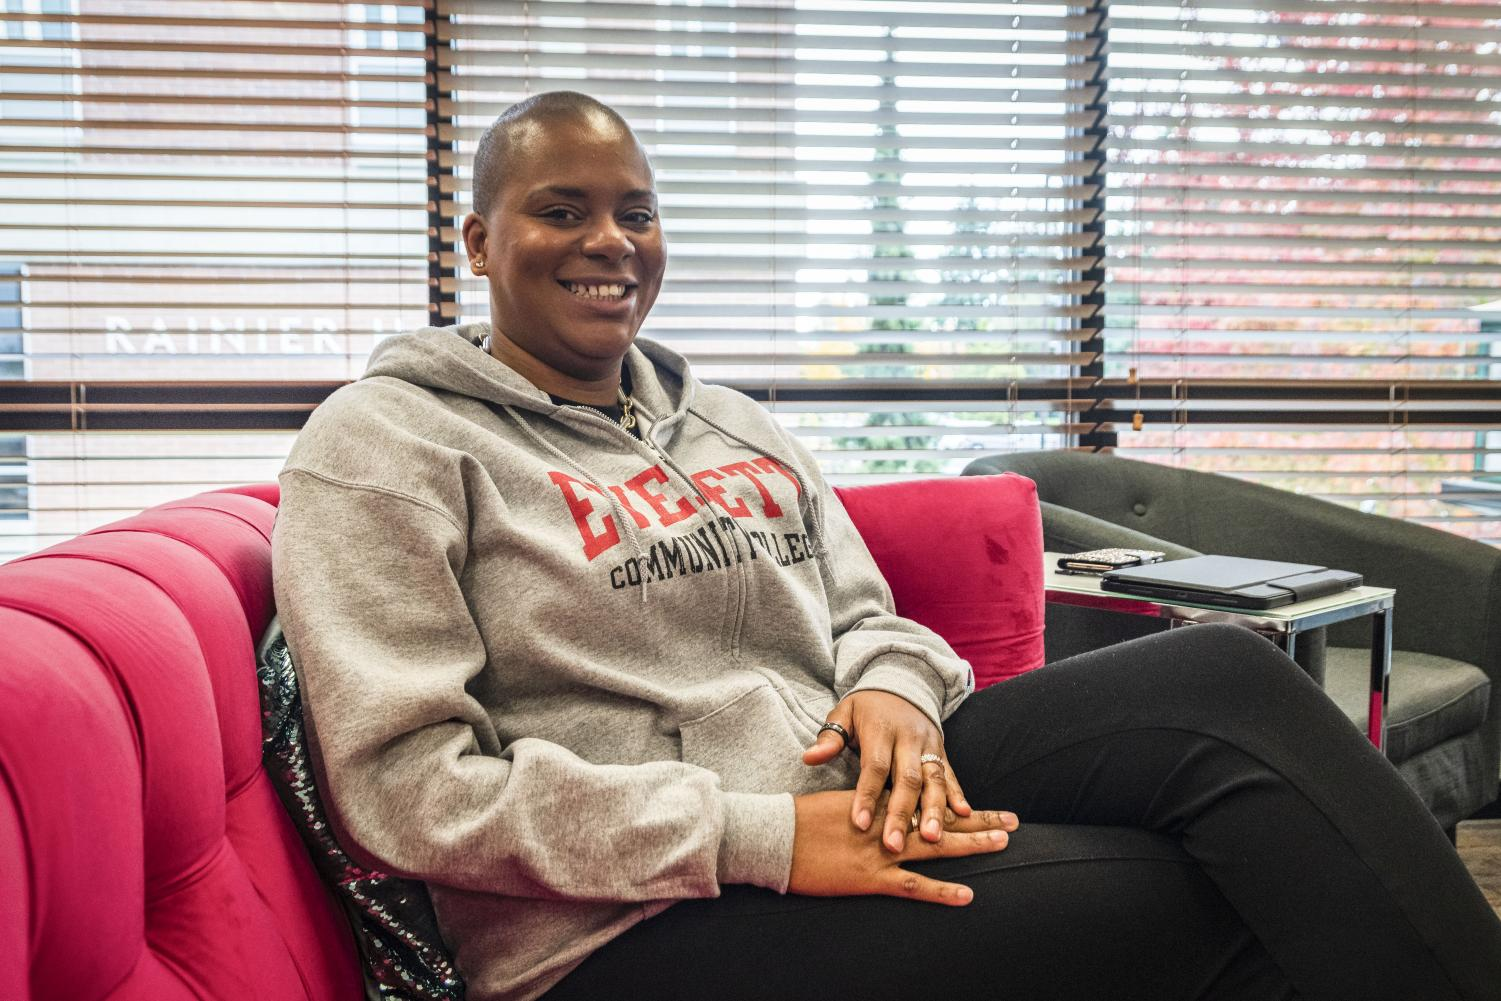 President Daria Willis, in her office located in Olympus Hall, shares her vision for the college. Willis says she wants to shift the college to implementing a shared governance model.